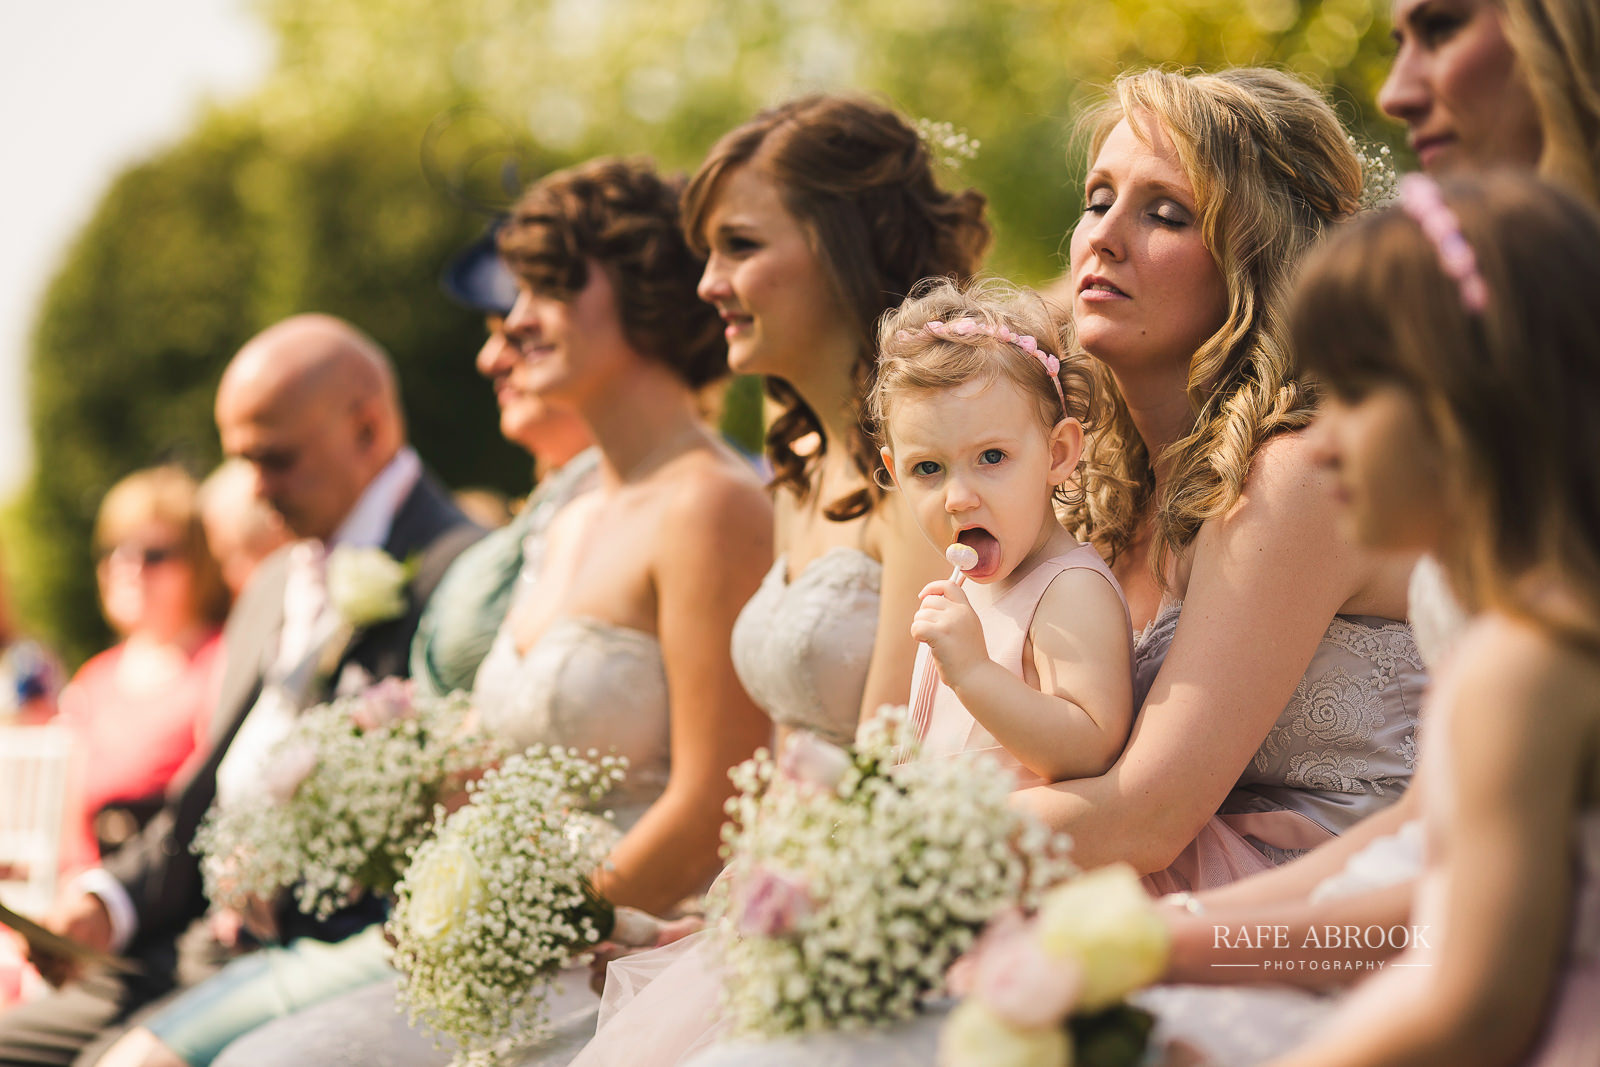 south farm wedding royston hertfordshire wedding photographer rafe abrook photography-1543.jpg